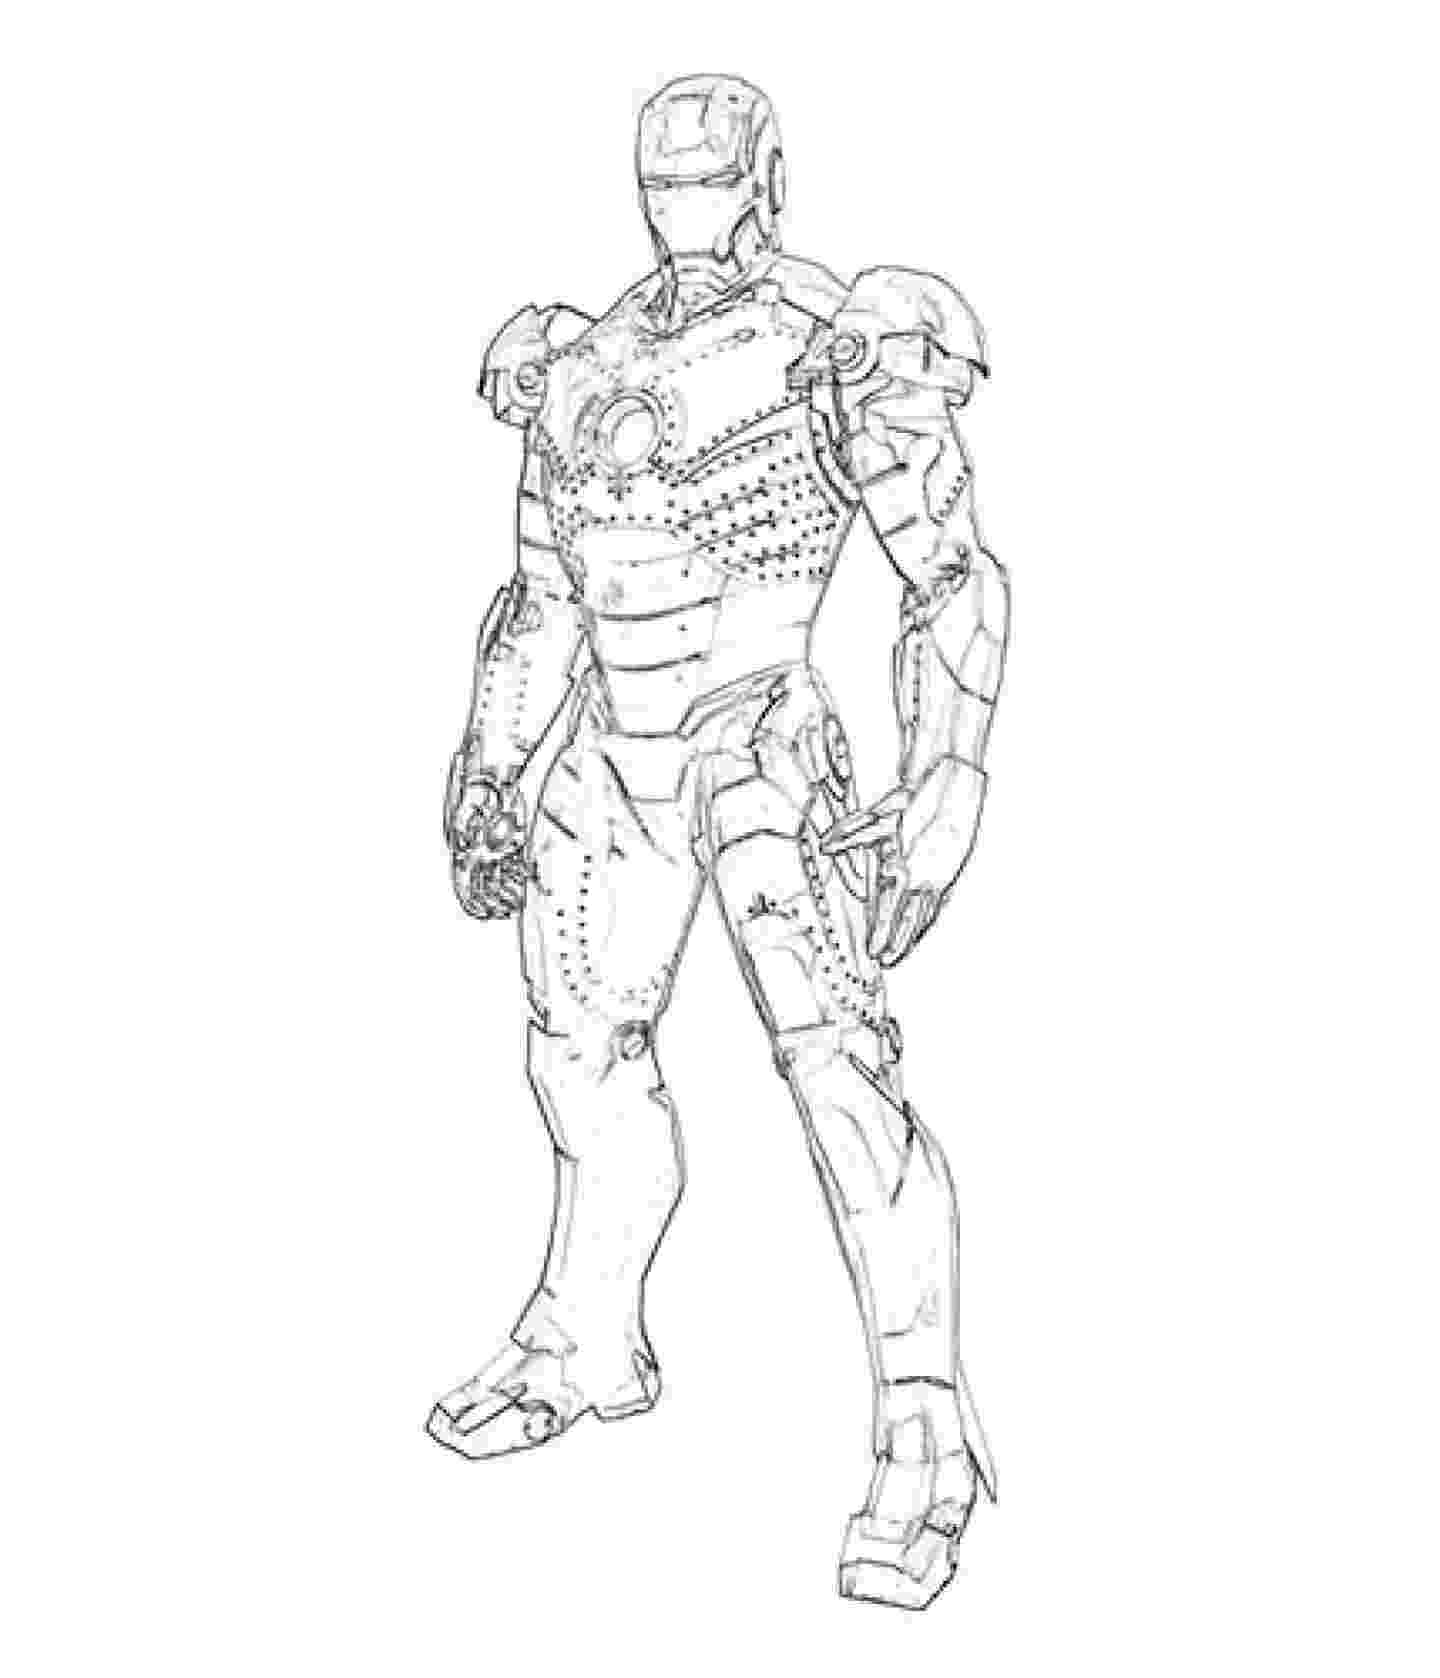 iron man 3 coloring pages iron man the avengers best coloring pages minister iron 3 man pages coloring